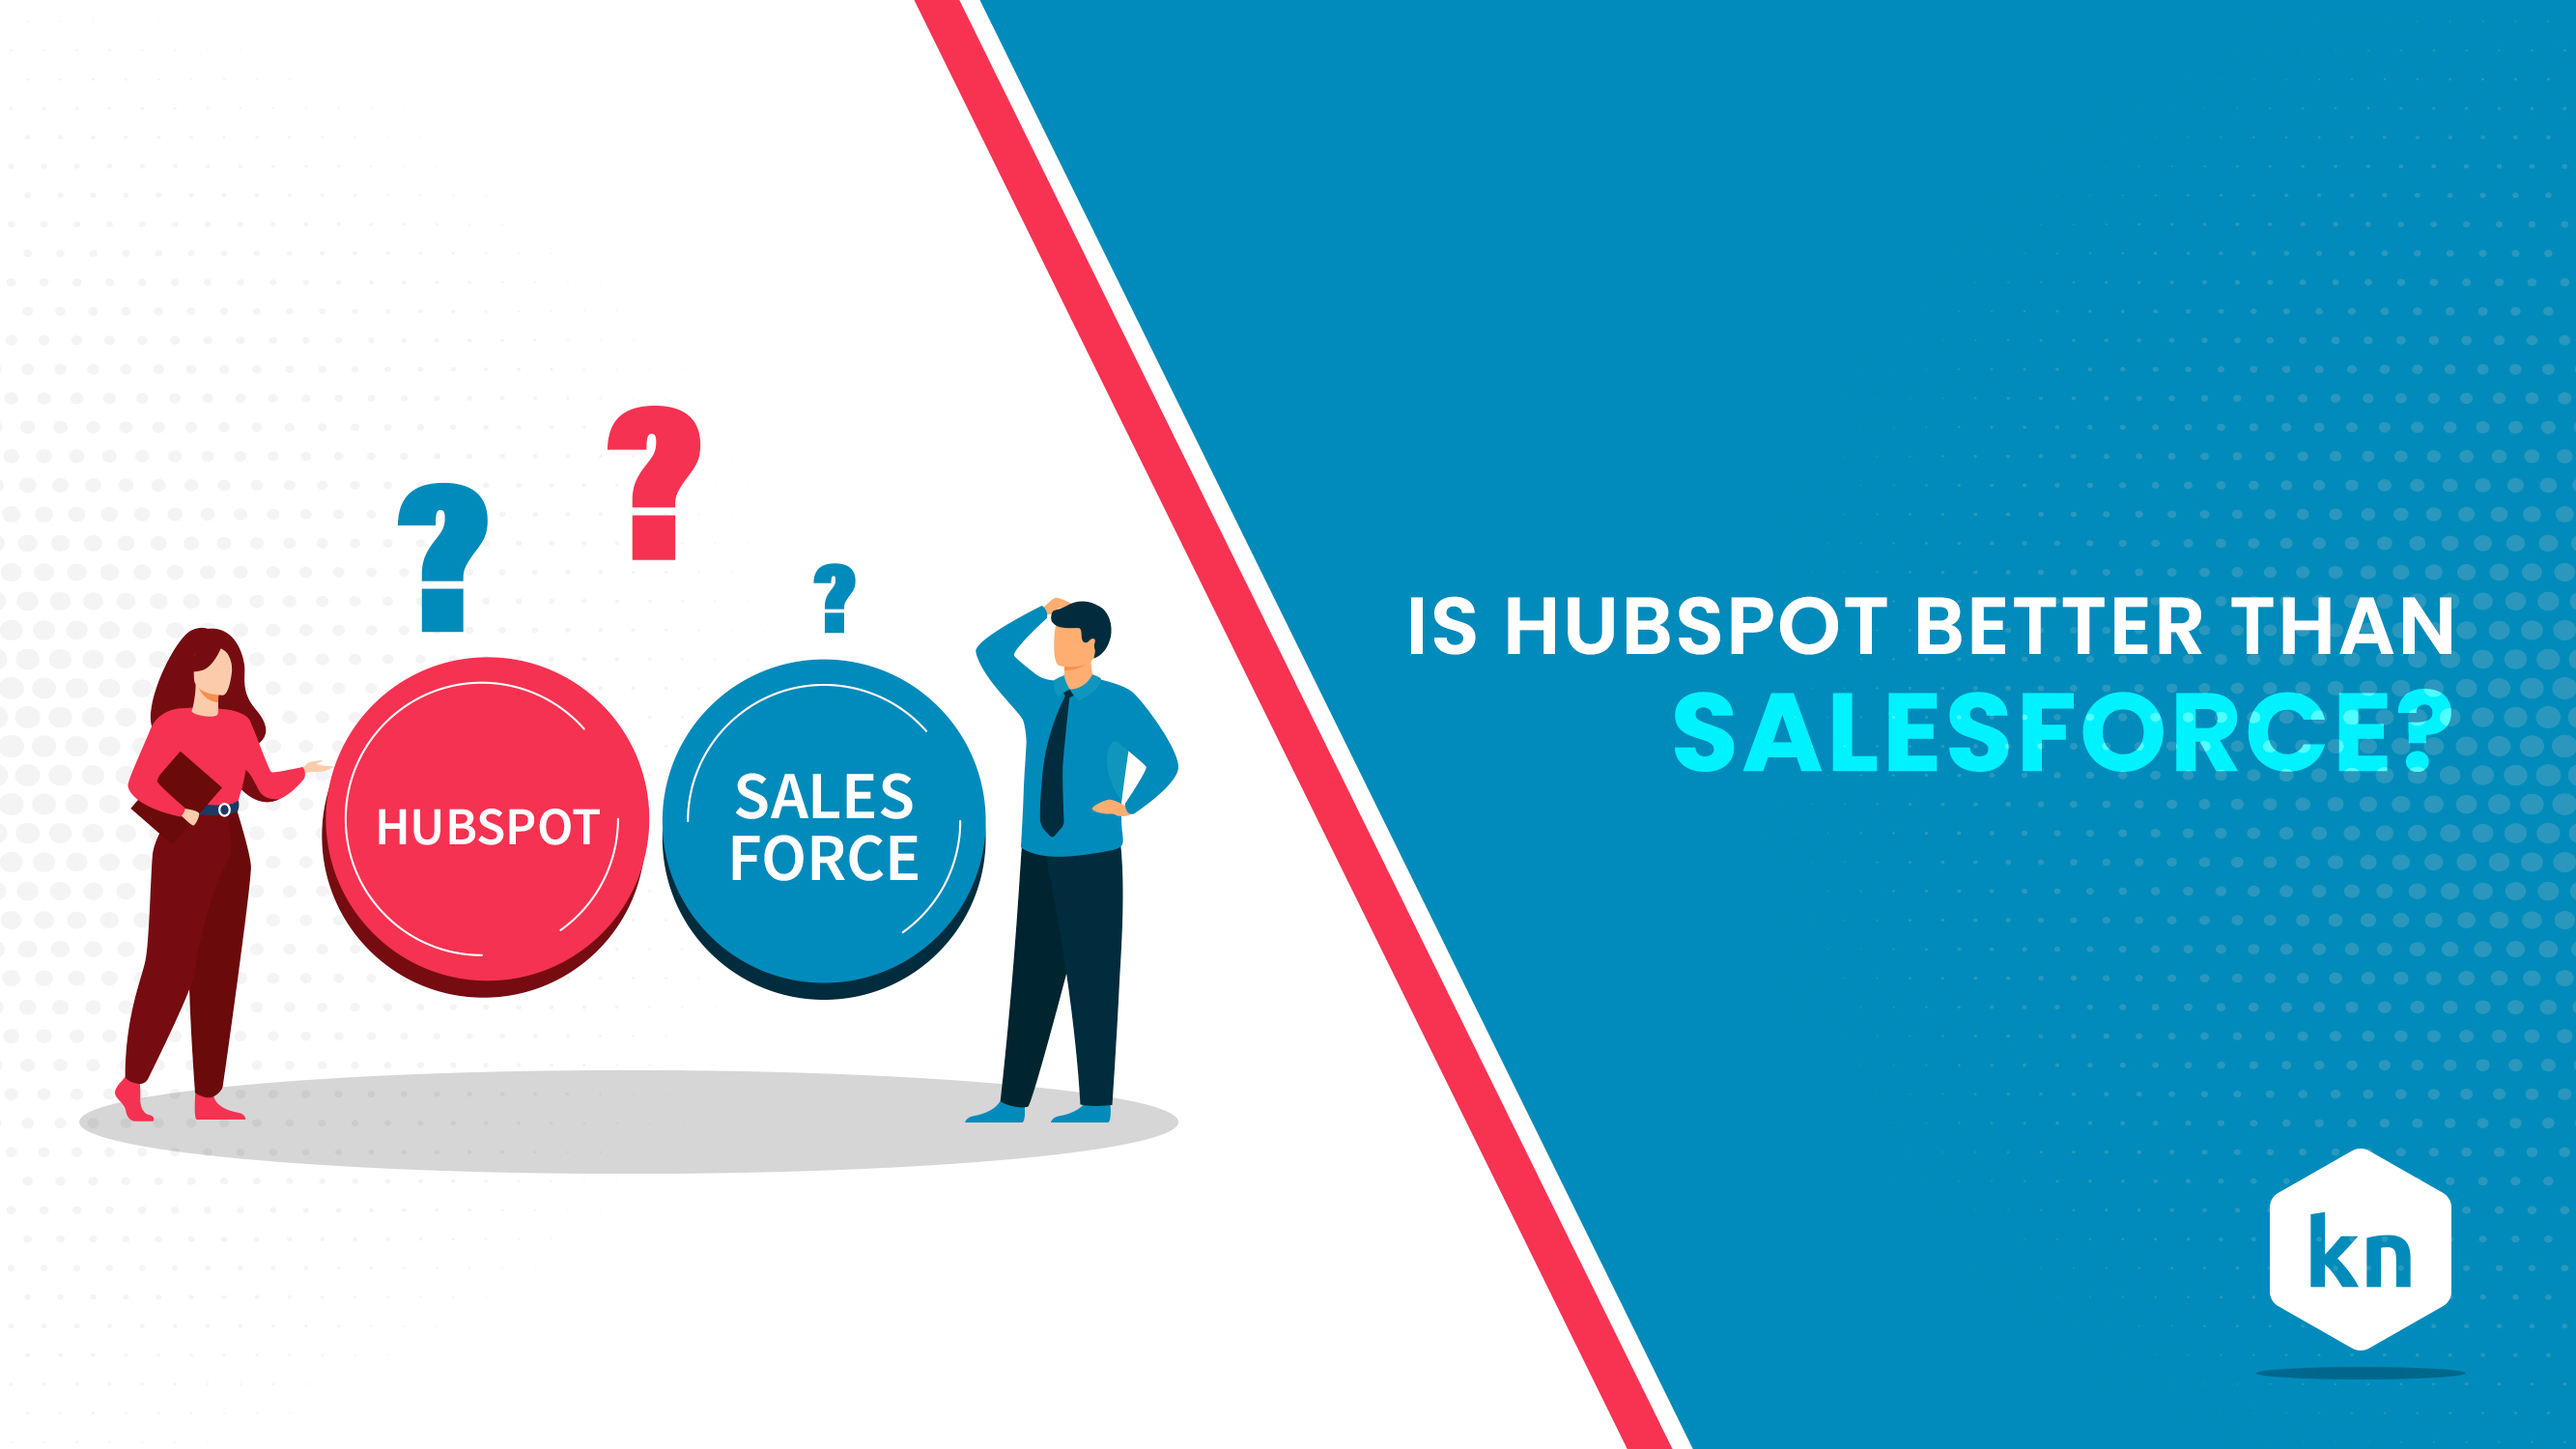 Is HubSpot Better Than Salesforce?